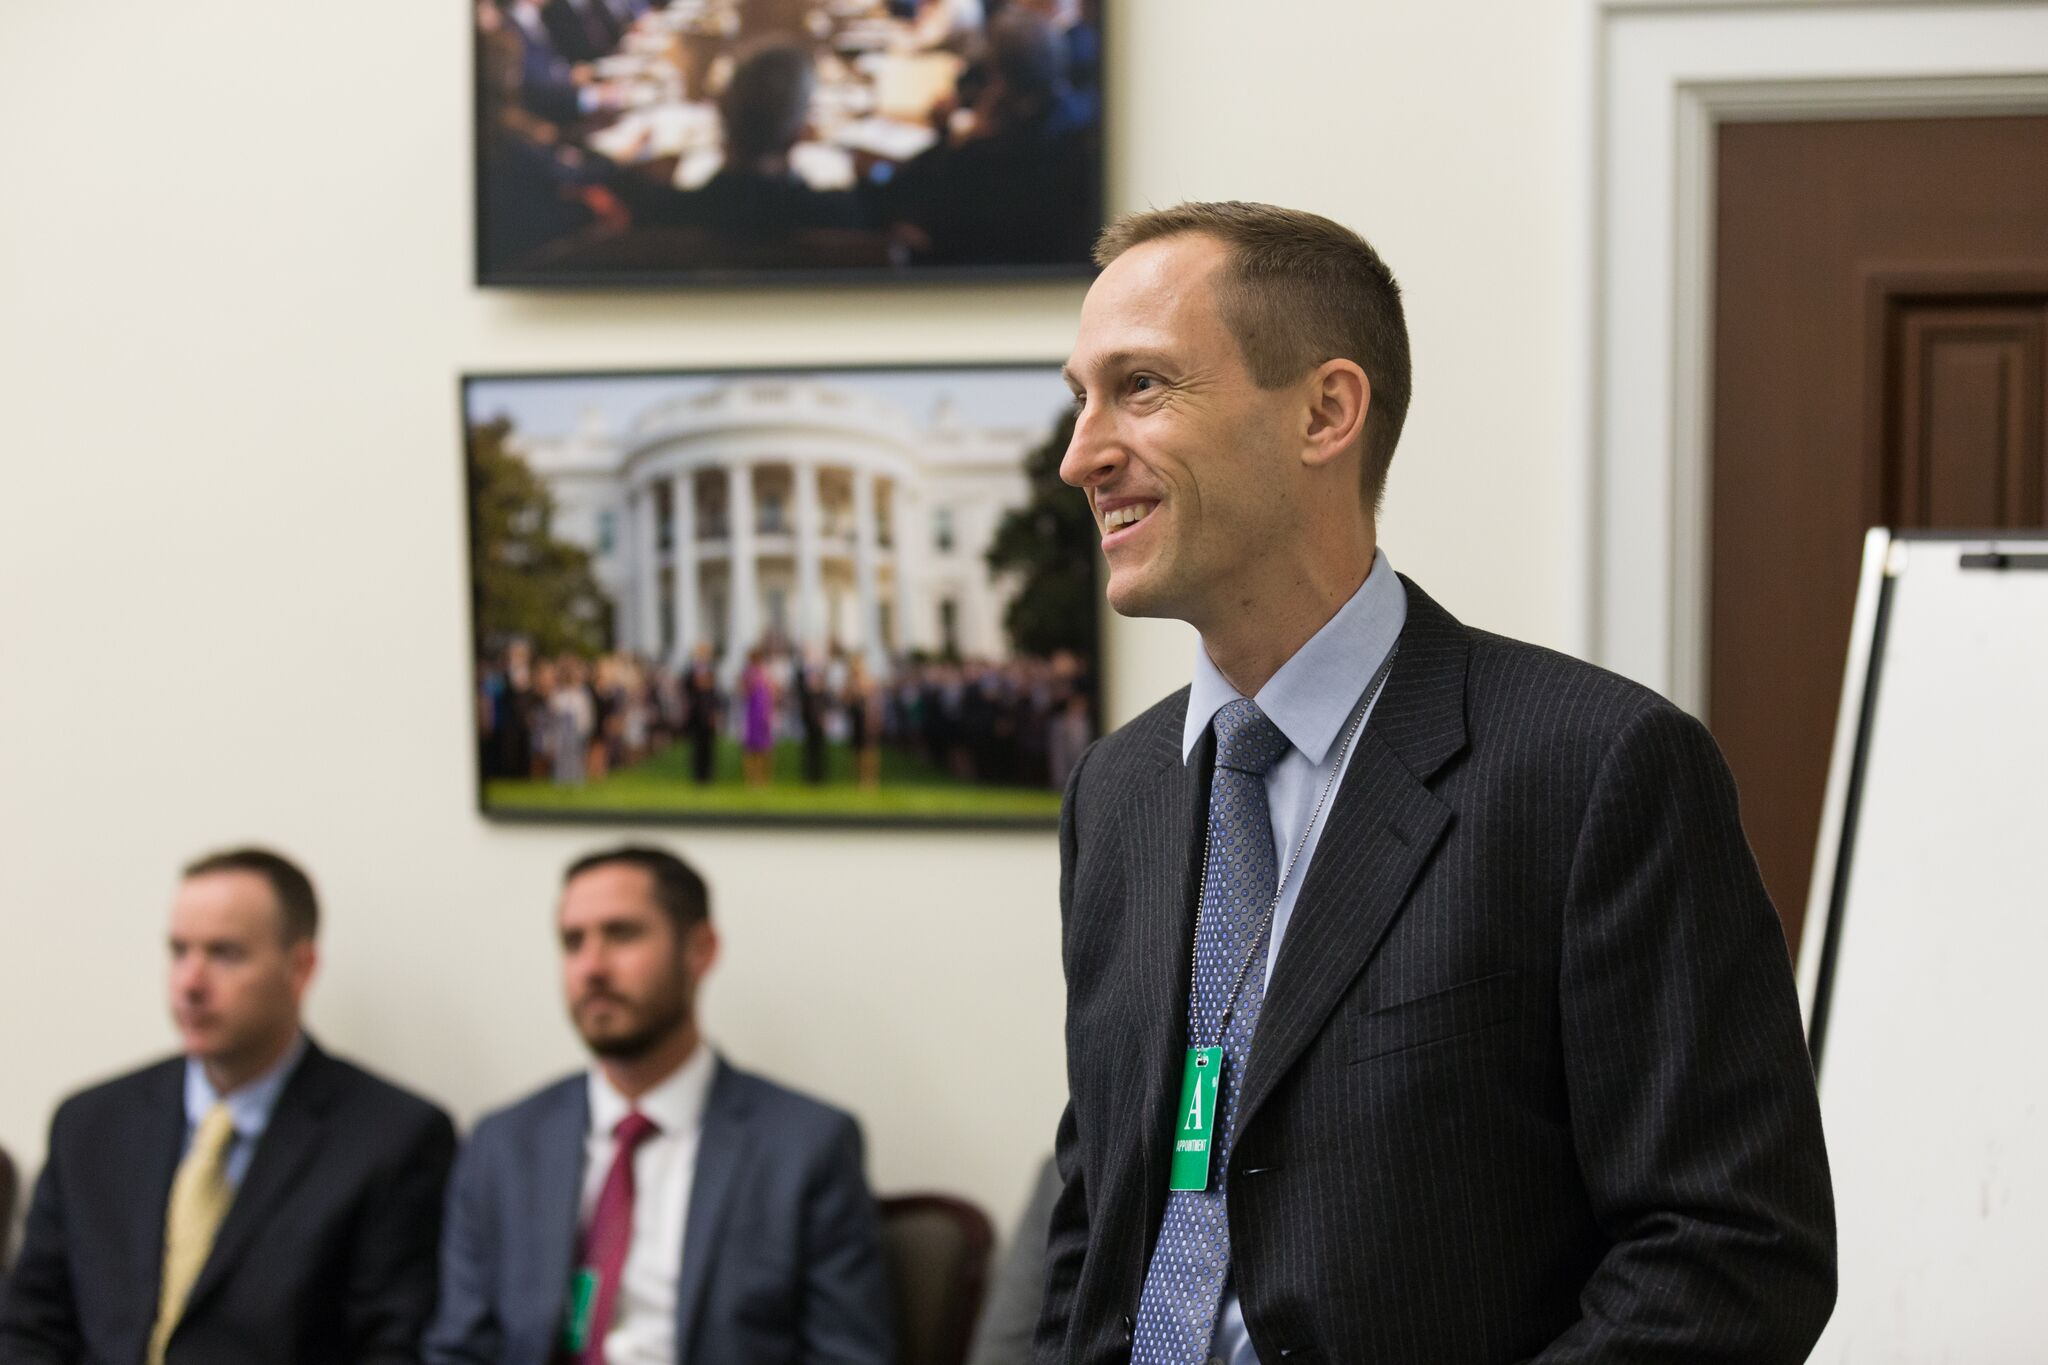 161027_Brookings_ExecEd_White_House_072_preview.jpeg